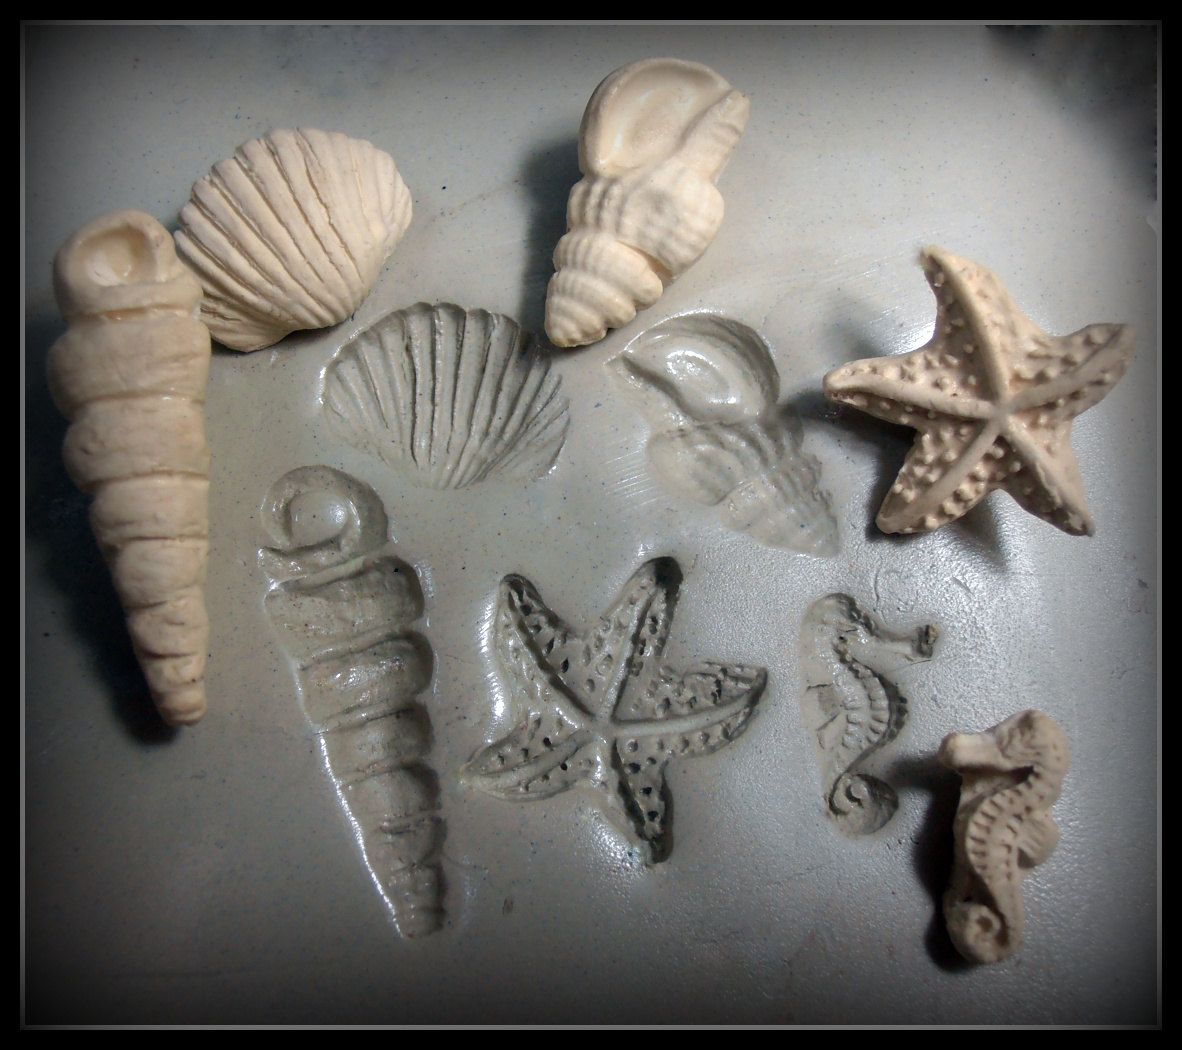 Handmade stamp5 sea shell bisque stamps for stamping on